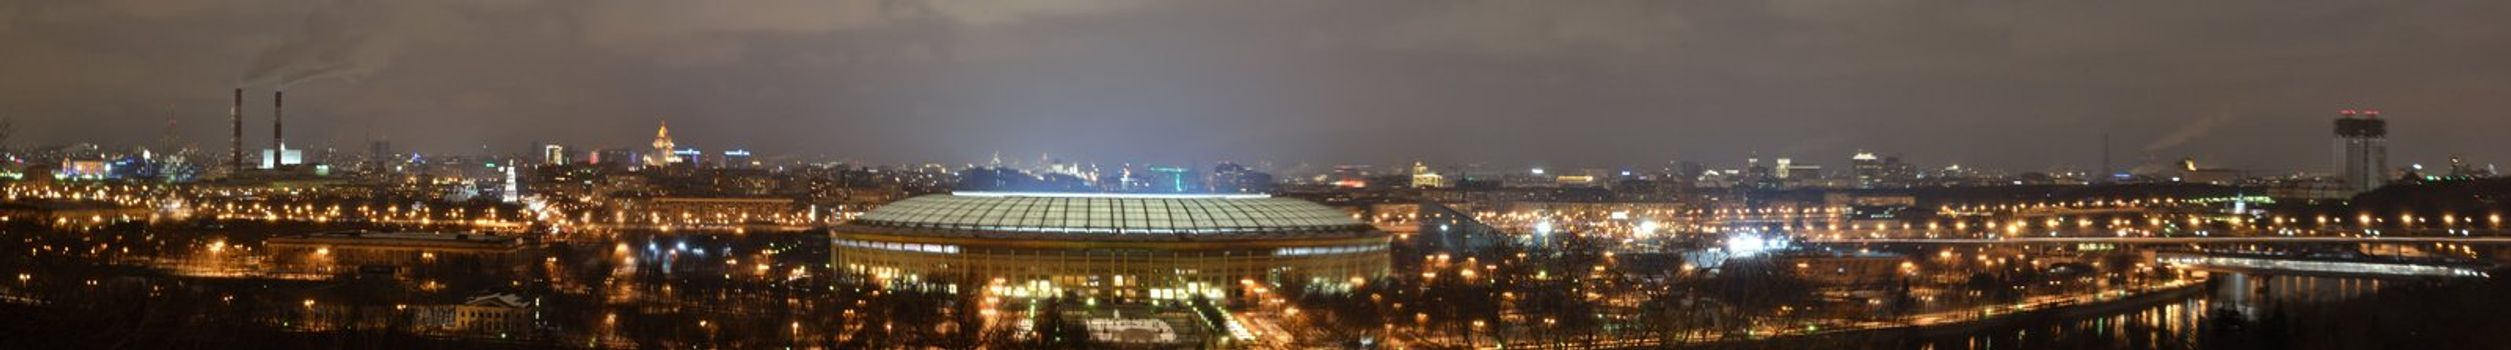 The Luzhniki Olympic Complex in Moscow